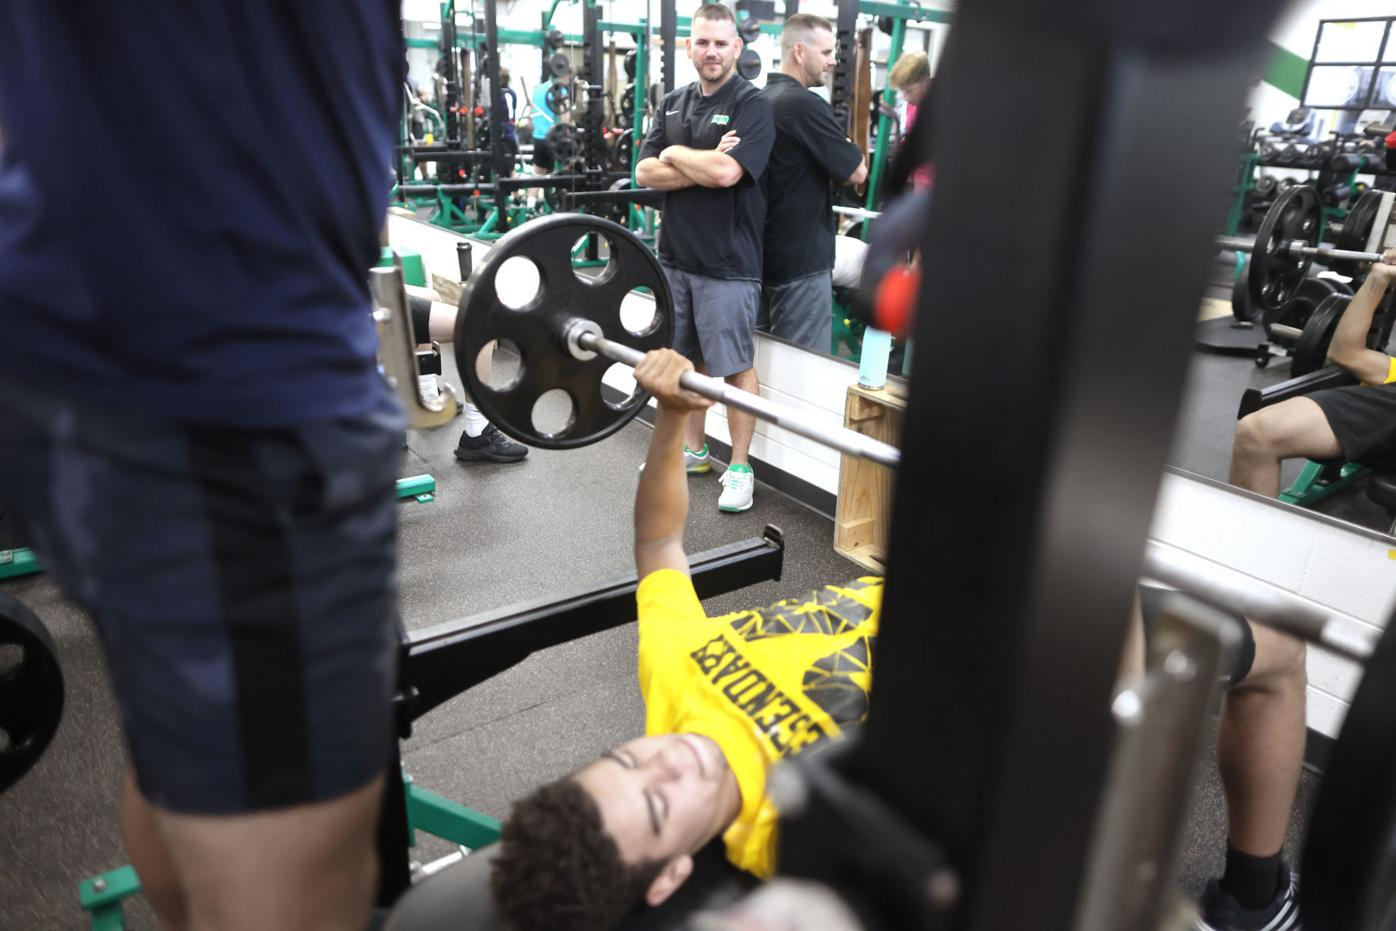 JVG_210702_WEIGHTS02